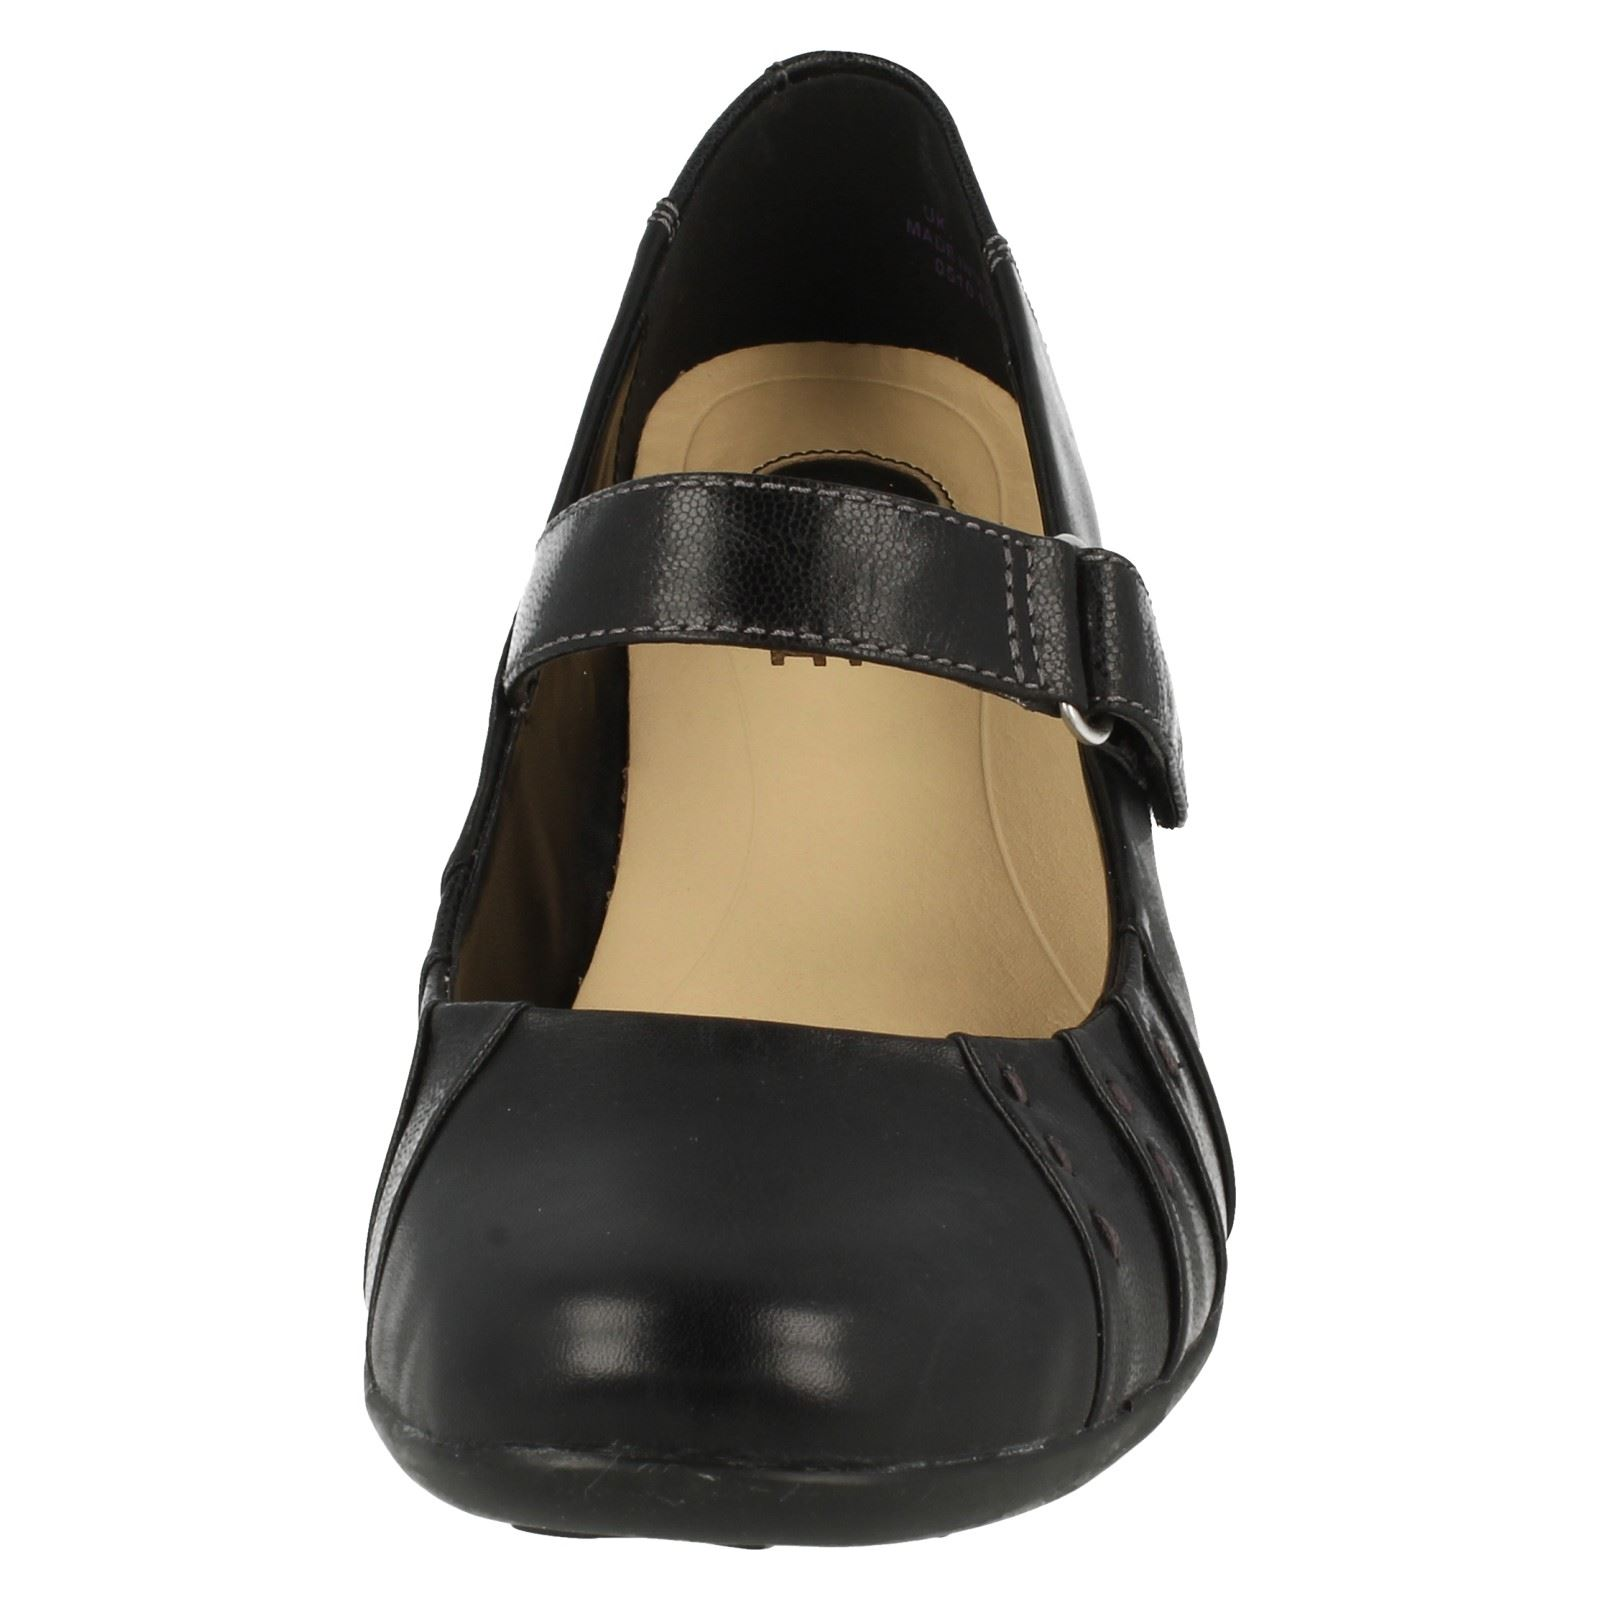 clarks active air shoes ladies